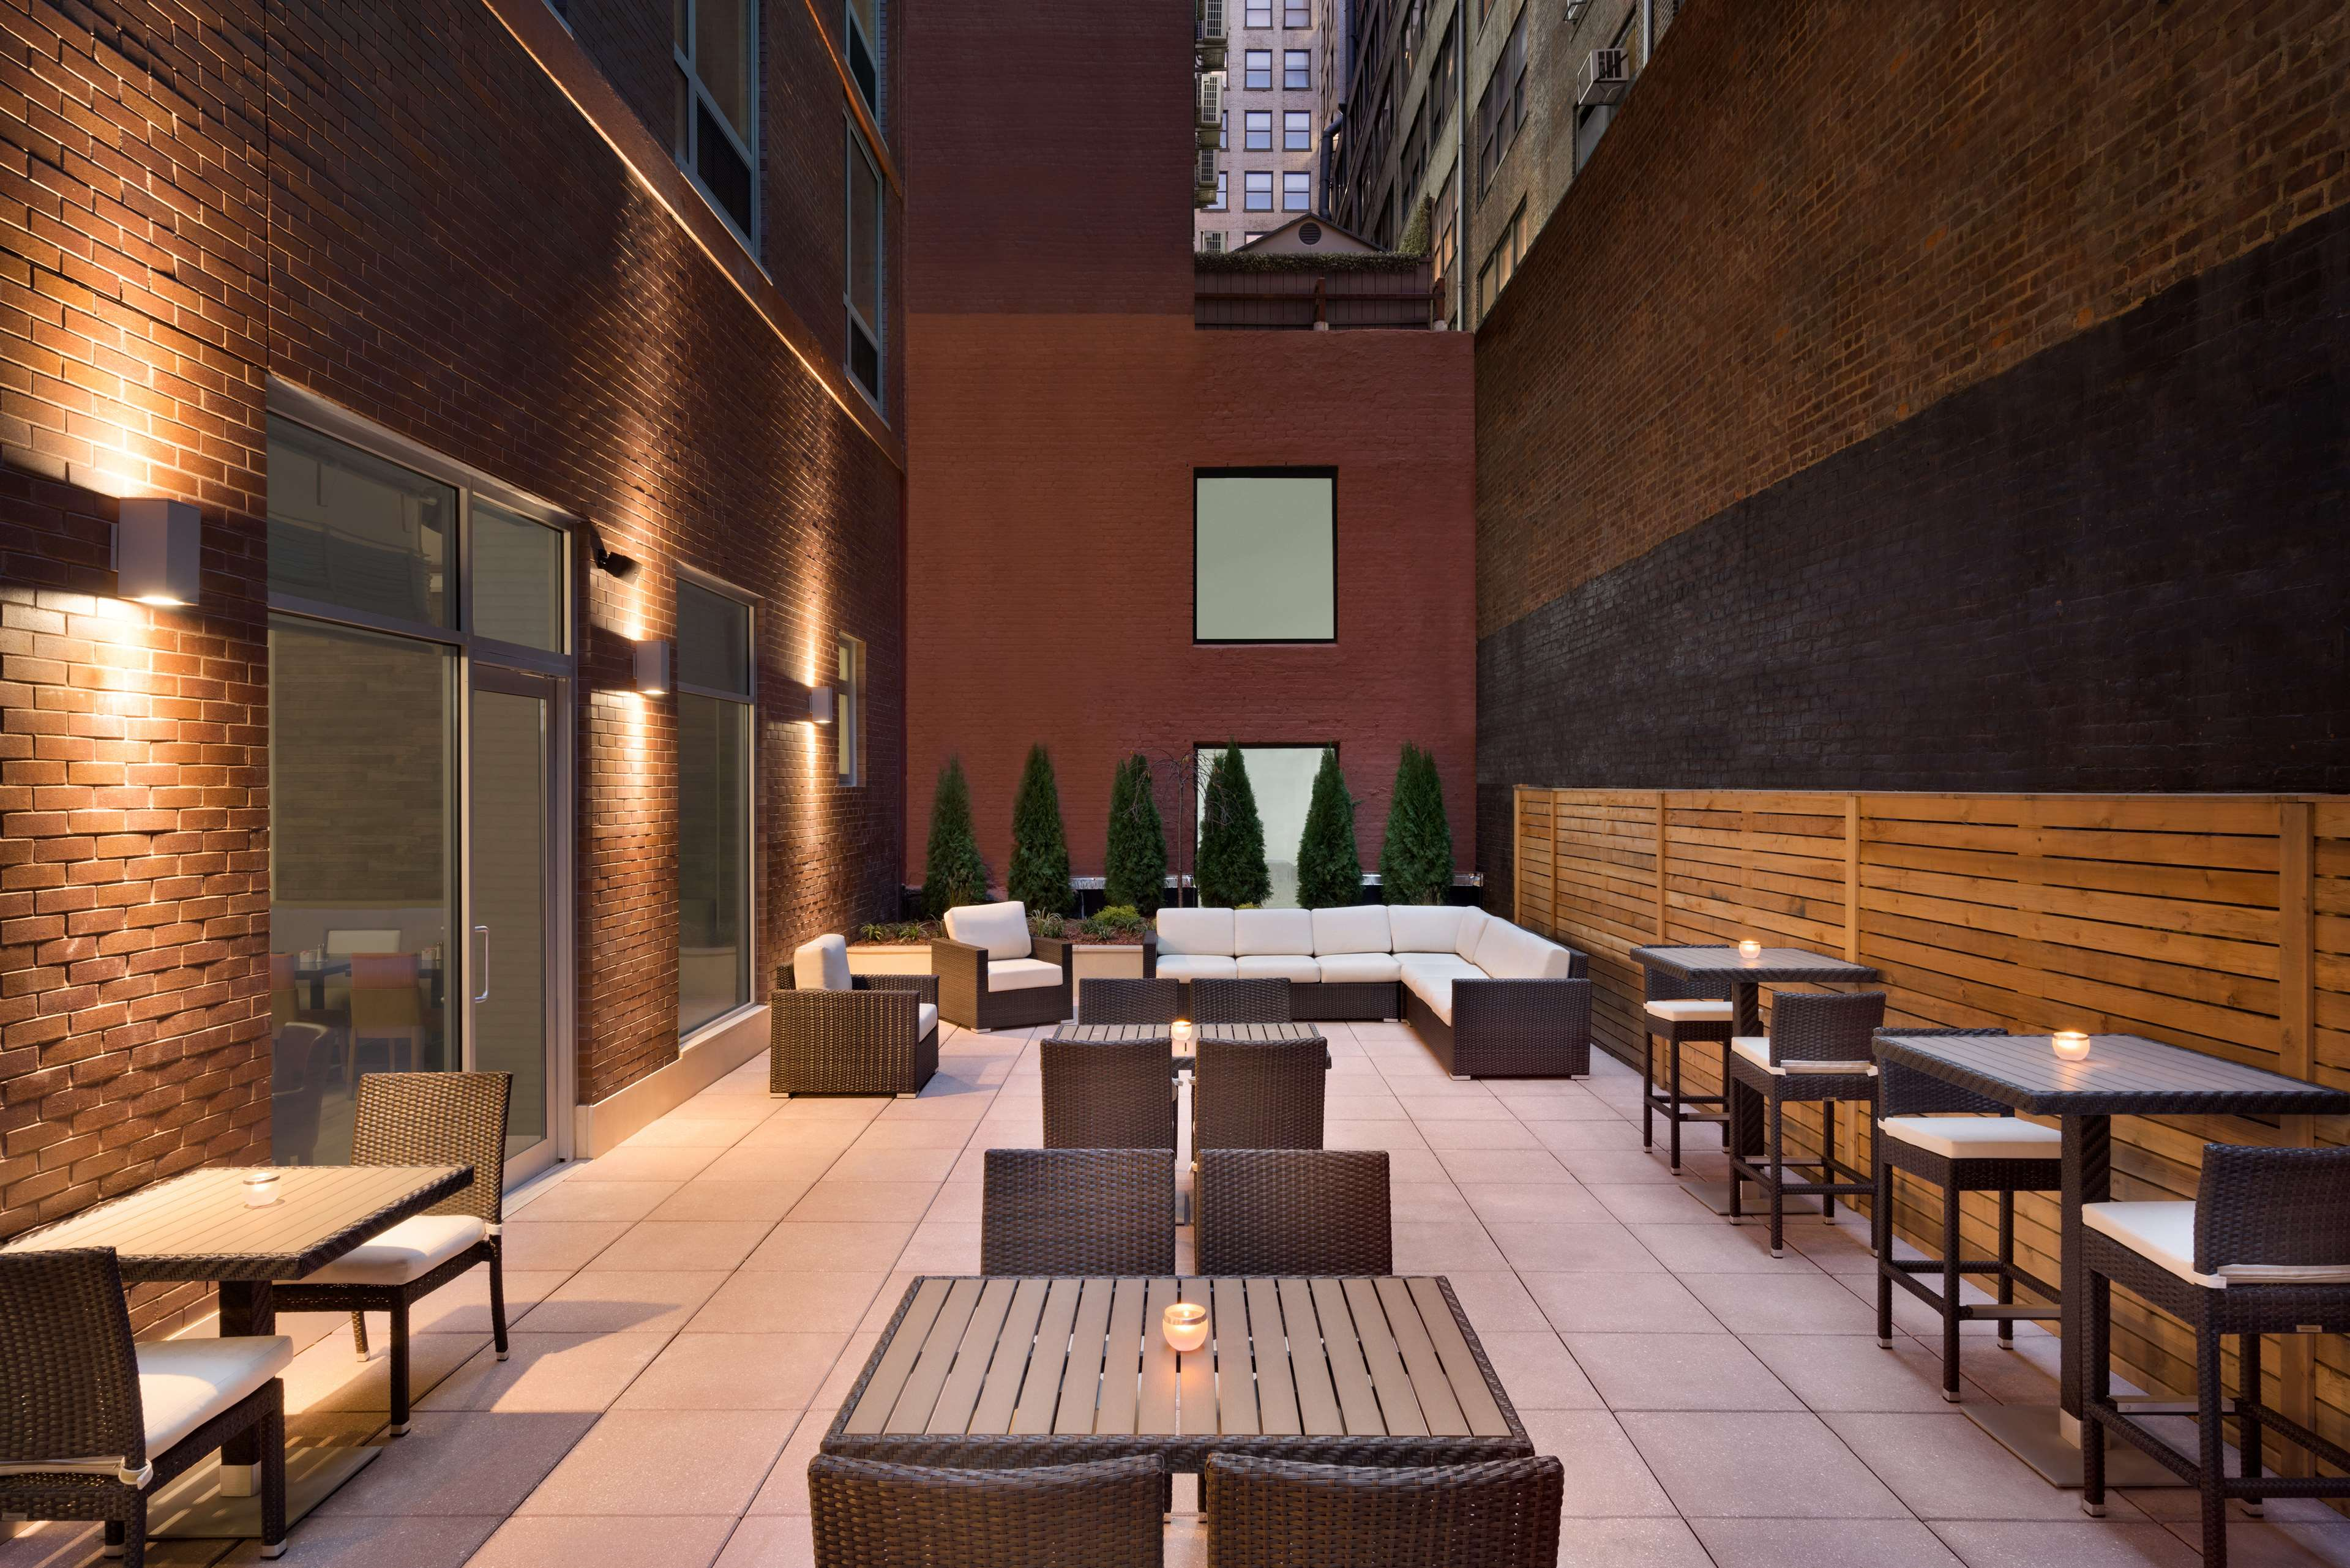 Hotels business in New York, NY, United States